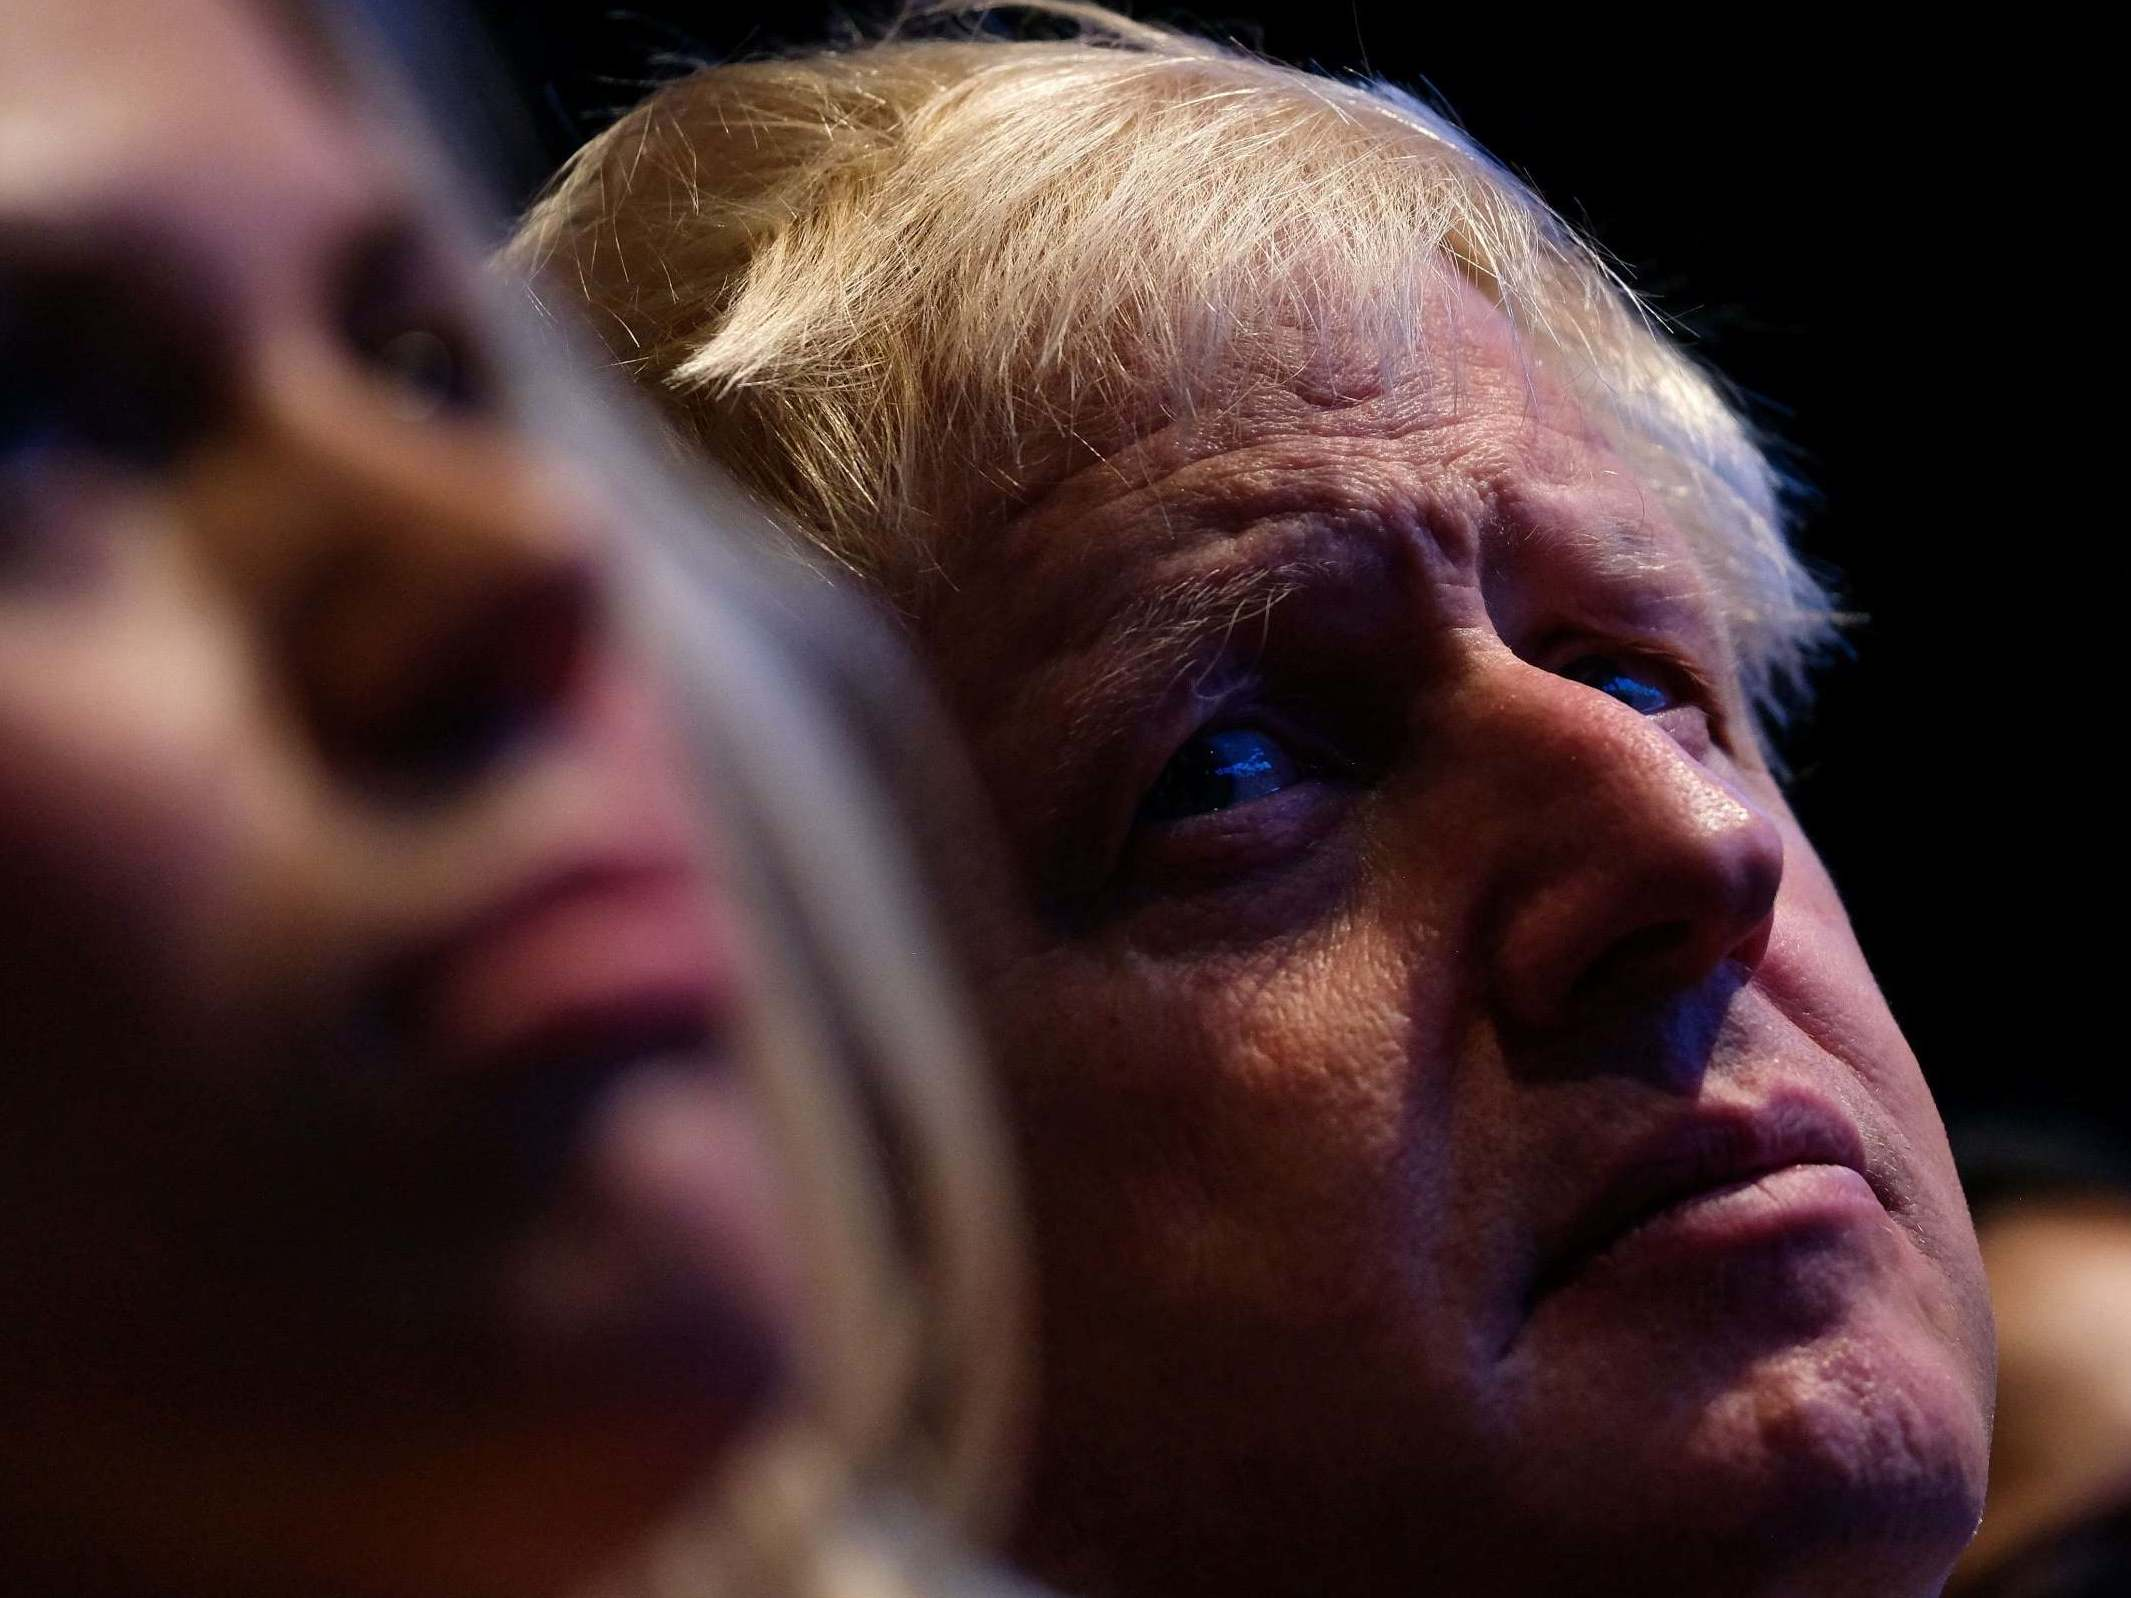 What is Boris Johnson up to by suggesting some MPs are 'collaborating' with foreigners?